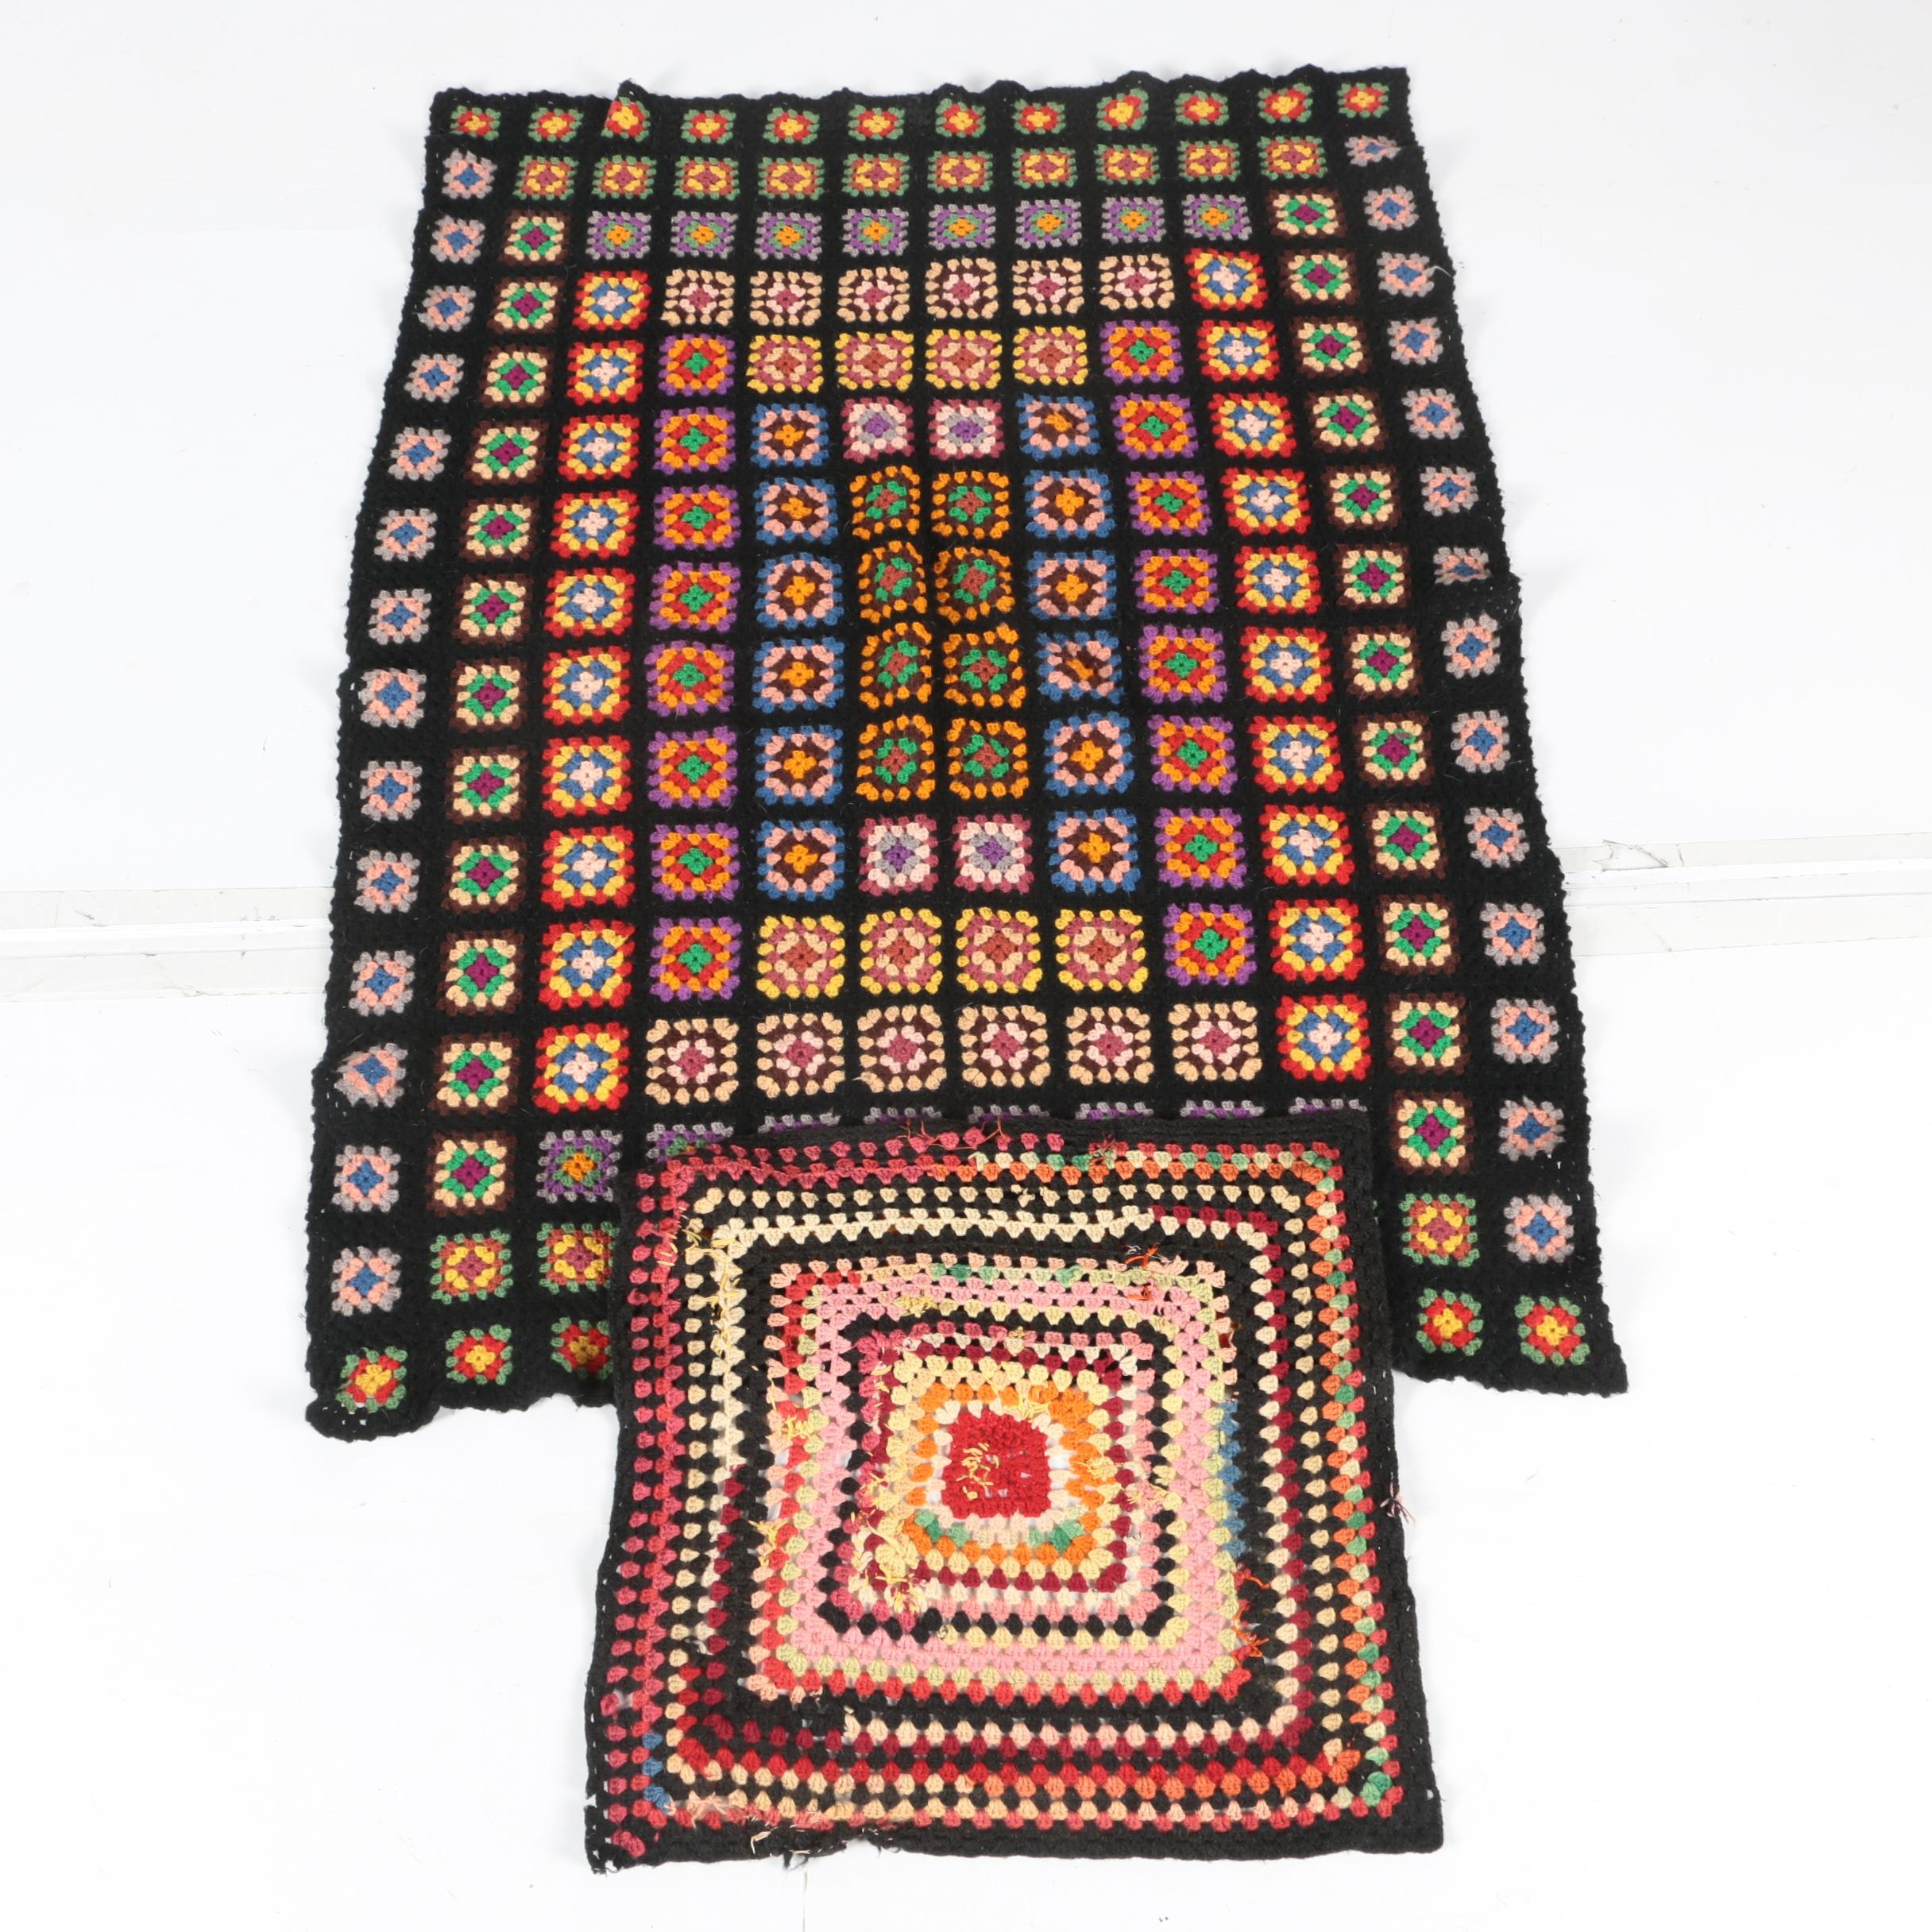 Colorful Knit Blanket and Decorative Piece